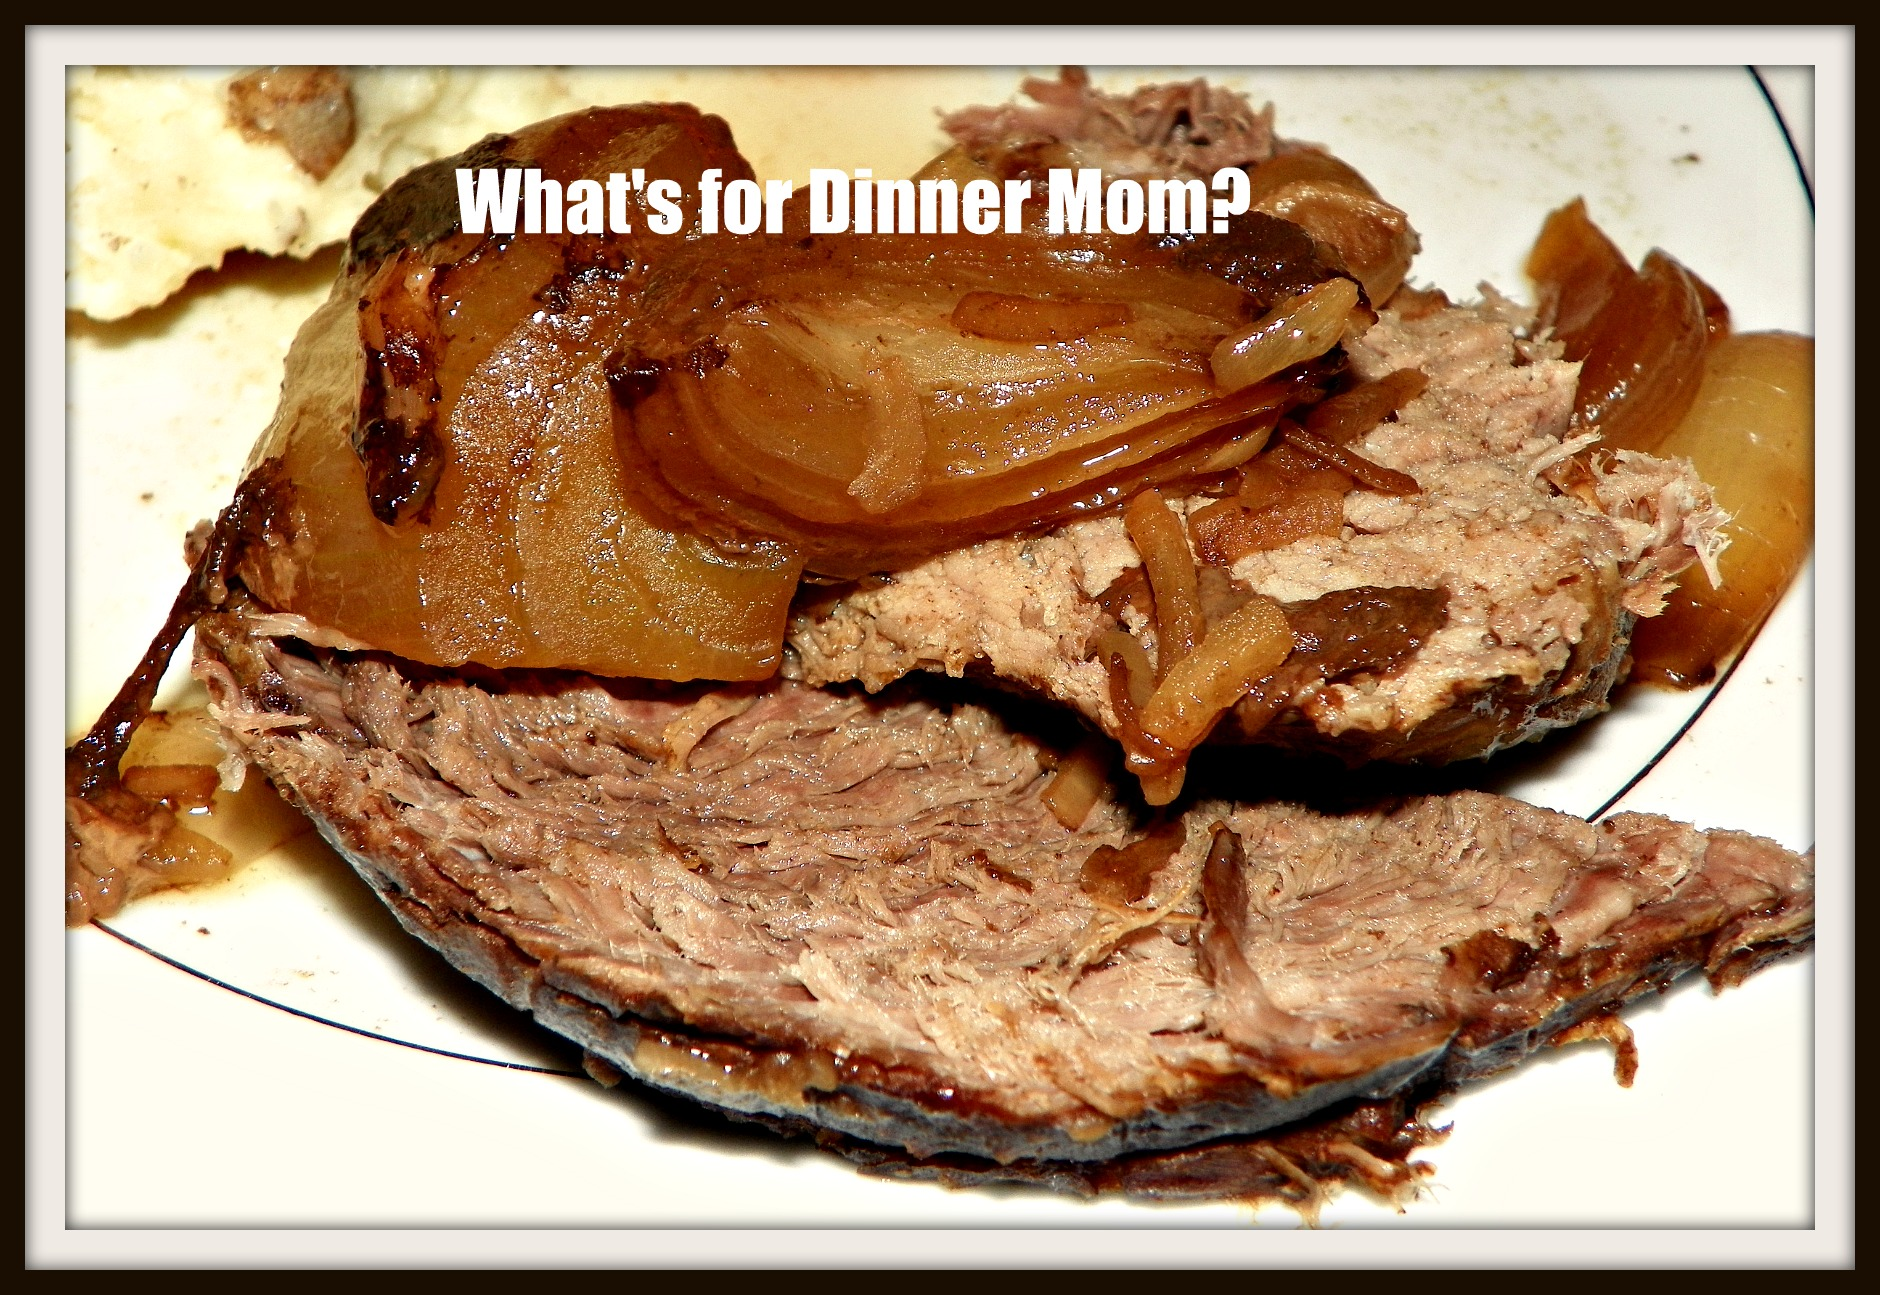 Balsamic Onion Slow Cooker Roast | What's for Dinner Moms?